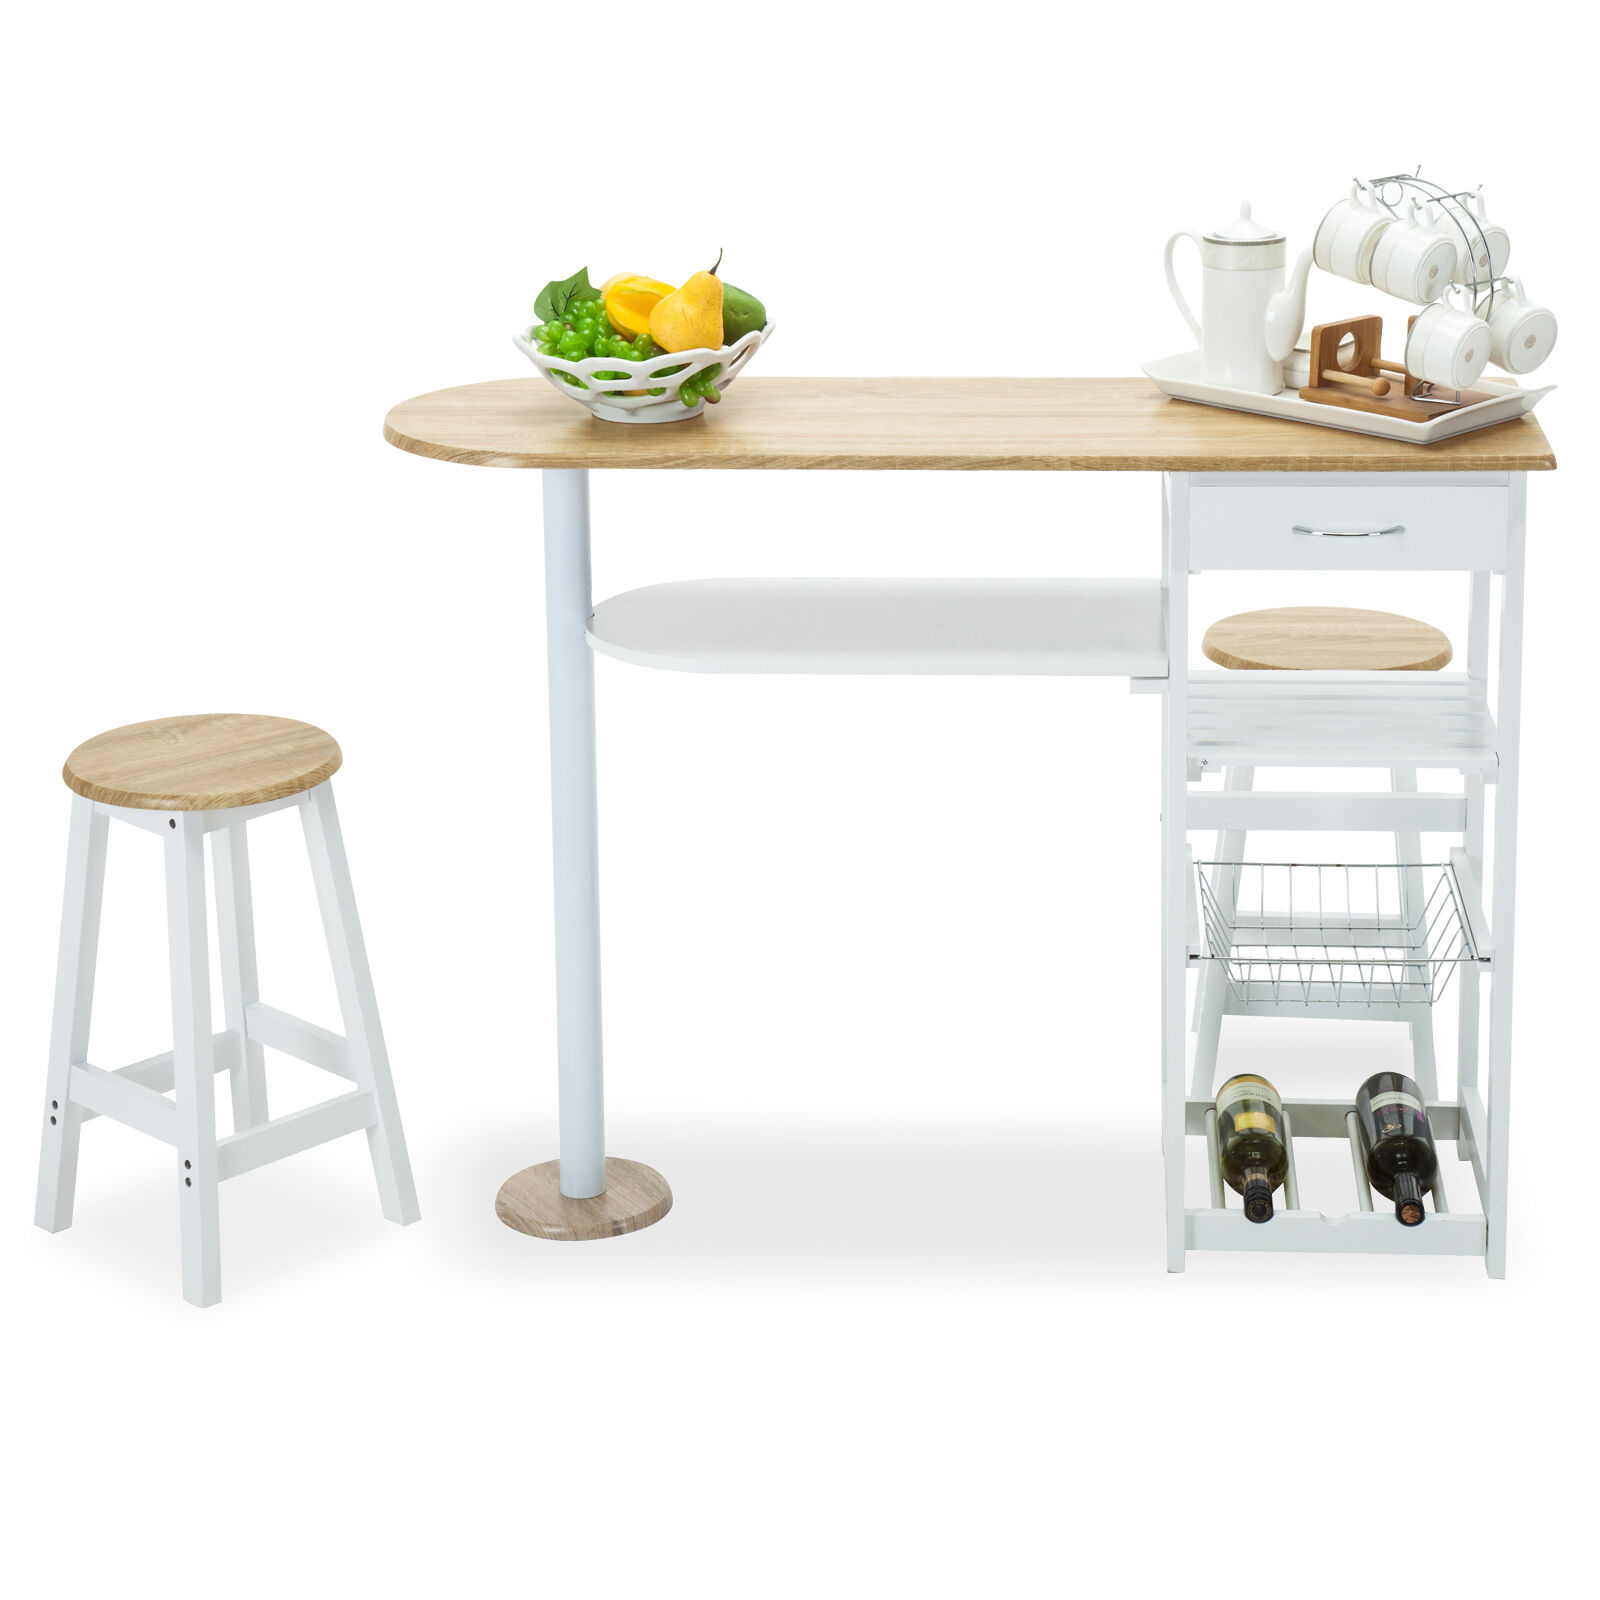 Kitchen Island Tables With Stools: Kitchen Island Cart Trolley Dining Table Storage 2 Bar